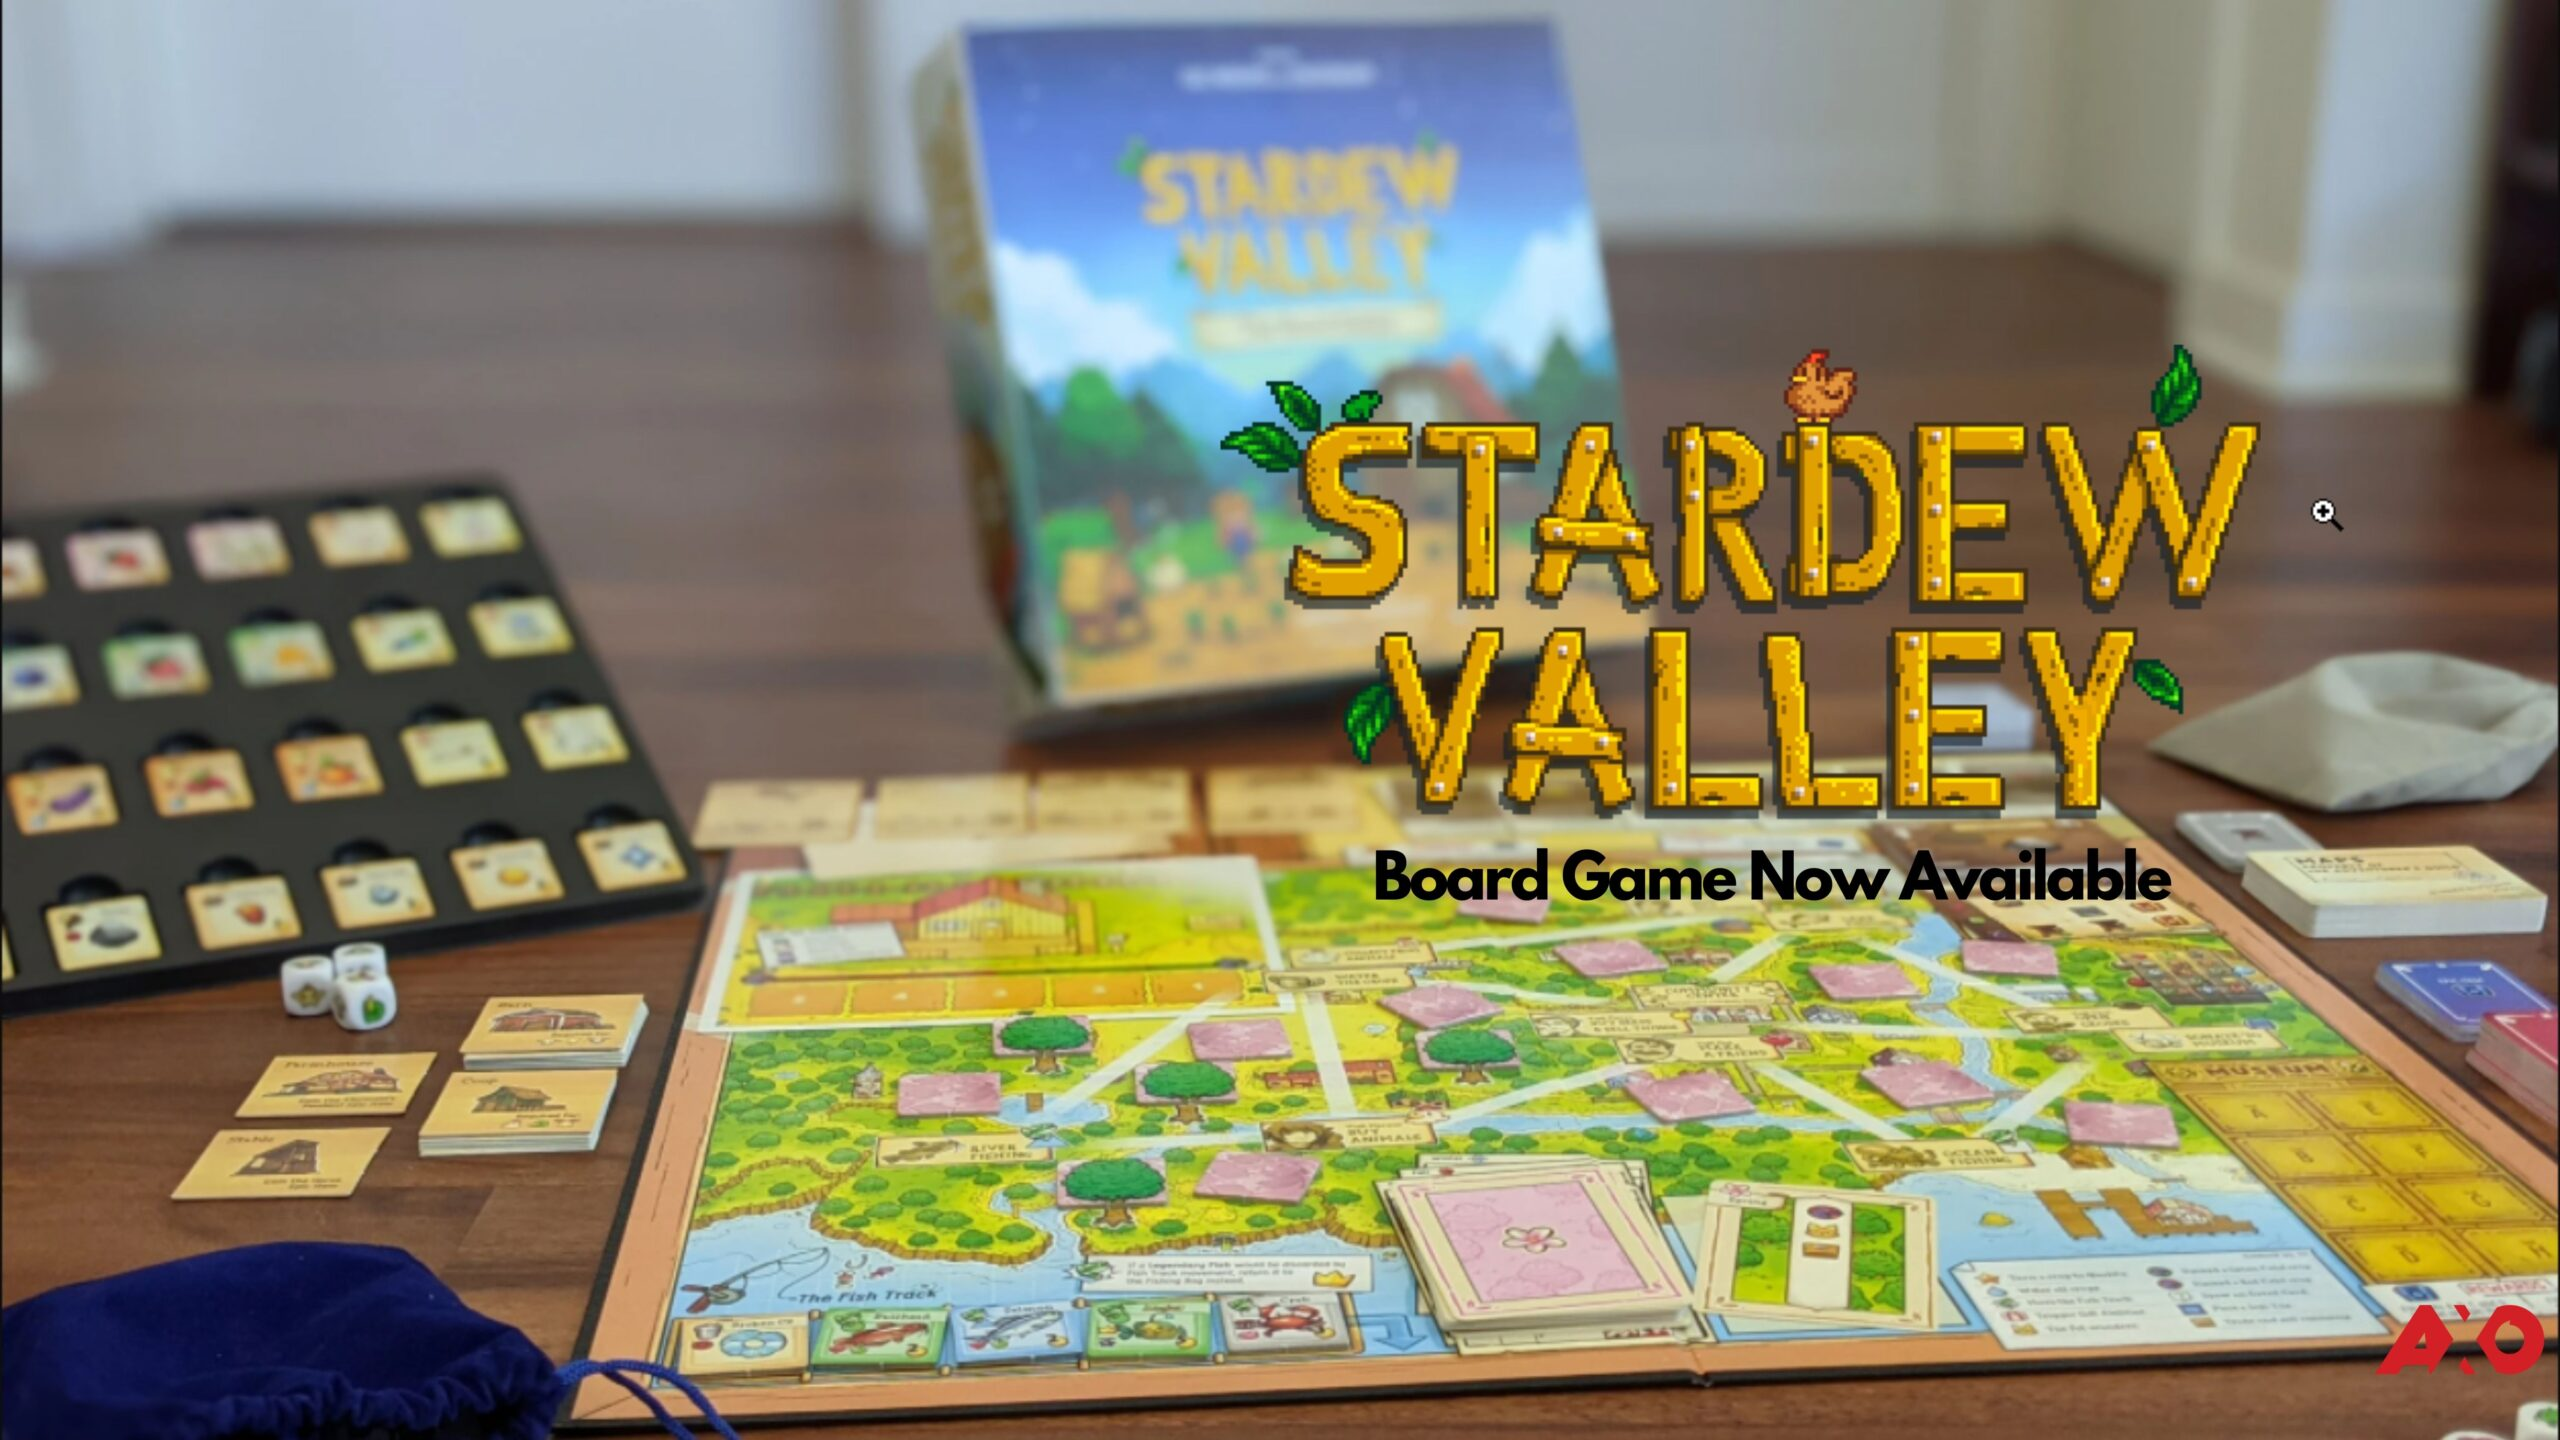 Stardew Valley: The Board Game Goes From Digital To On-Board farming with Friends 5